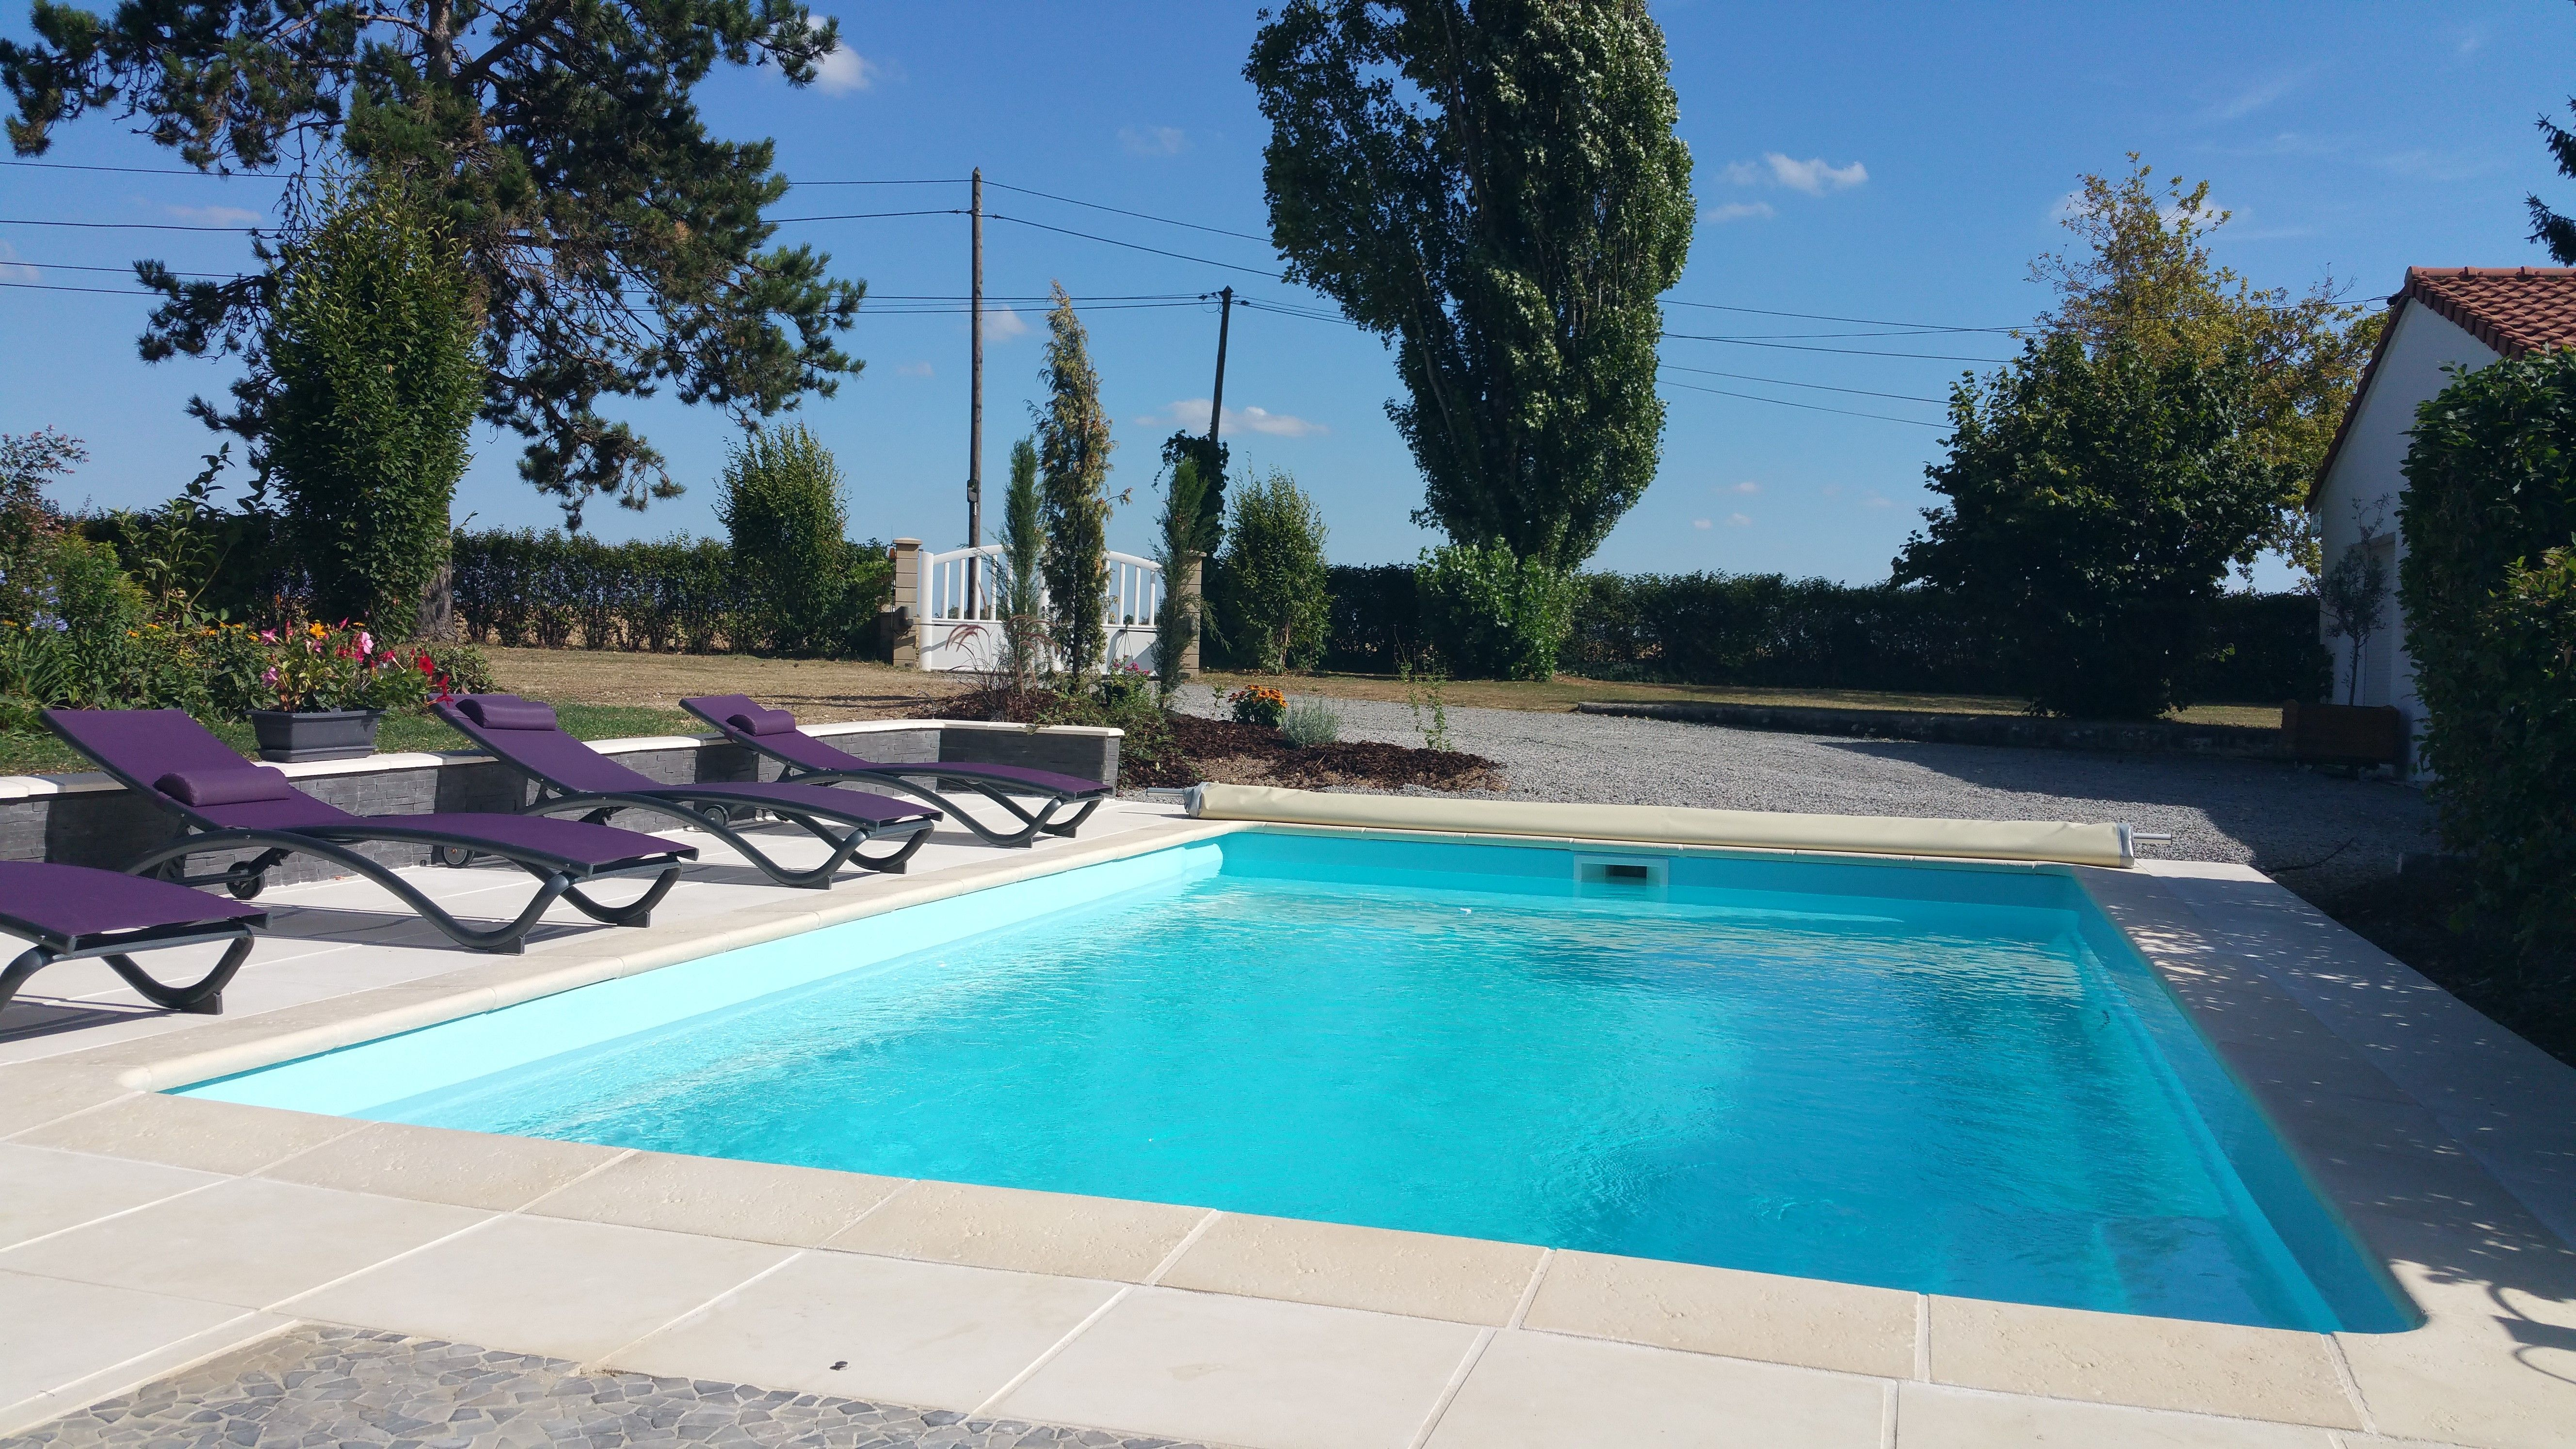 Piscine Coque Polyester Forme Rectangulaire 7x4 A Fond Plat